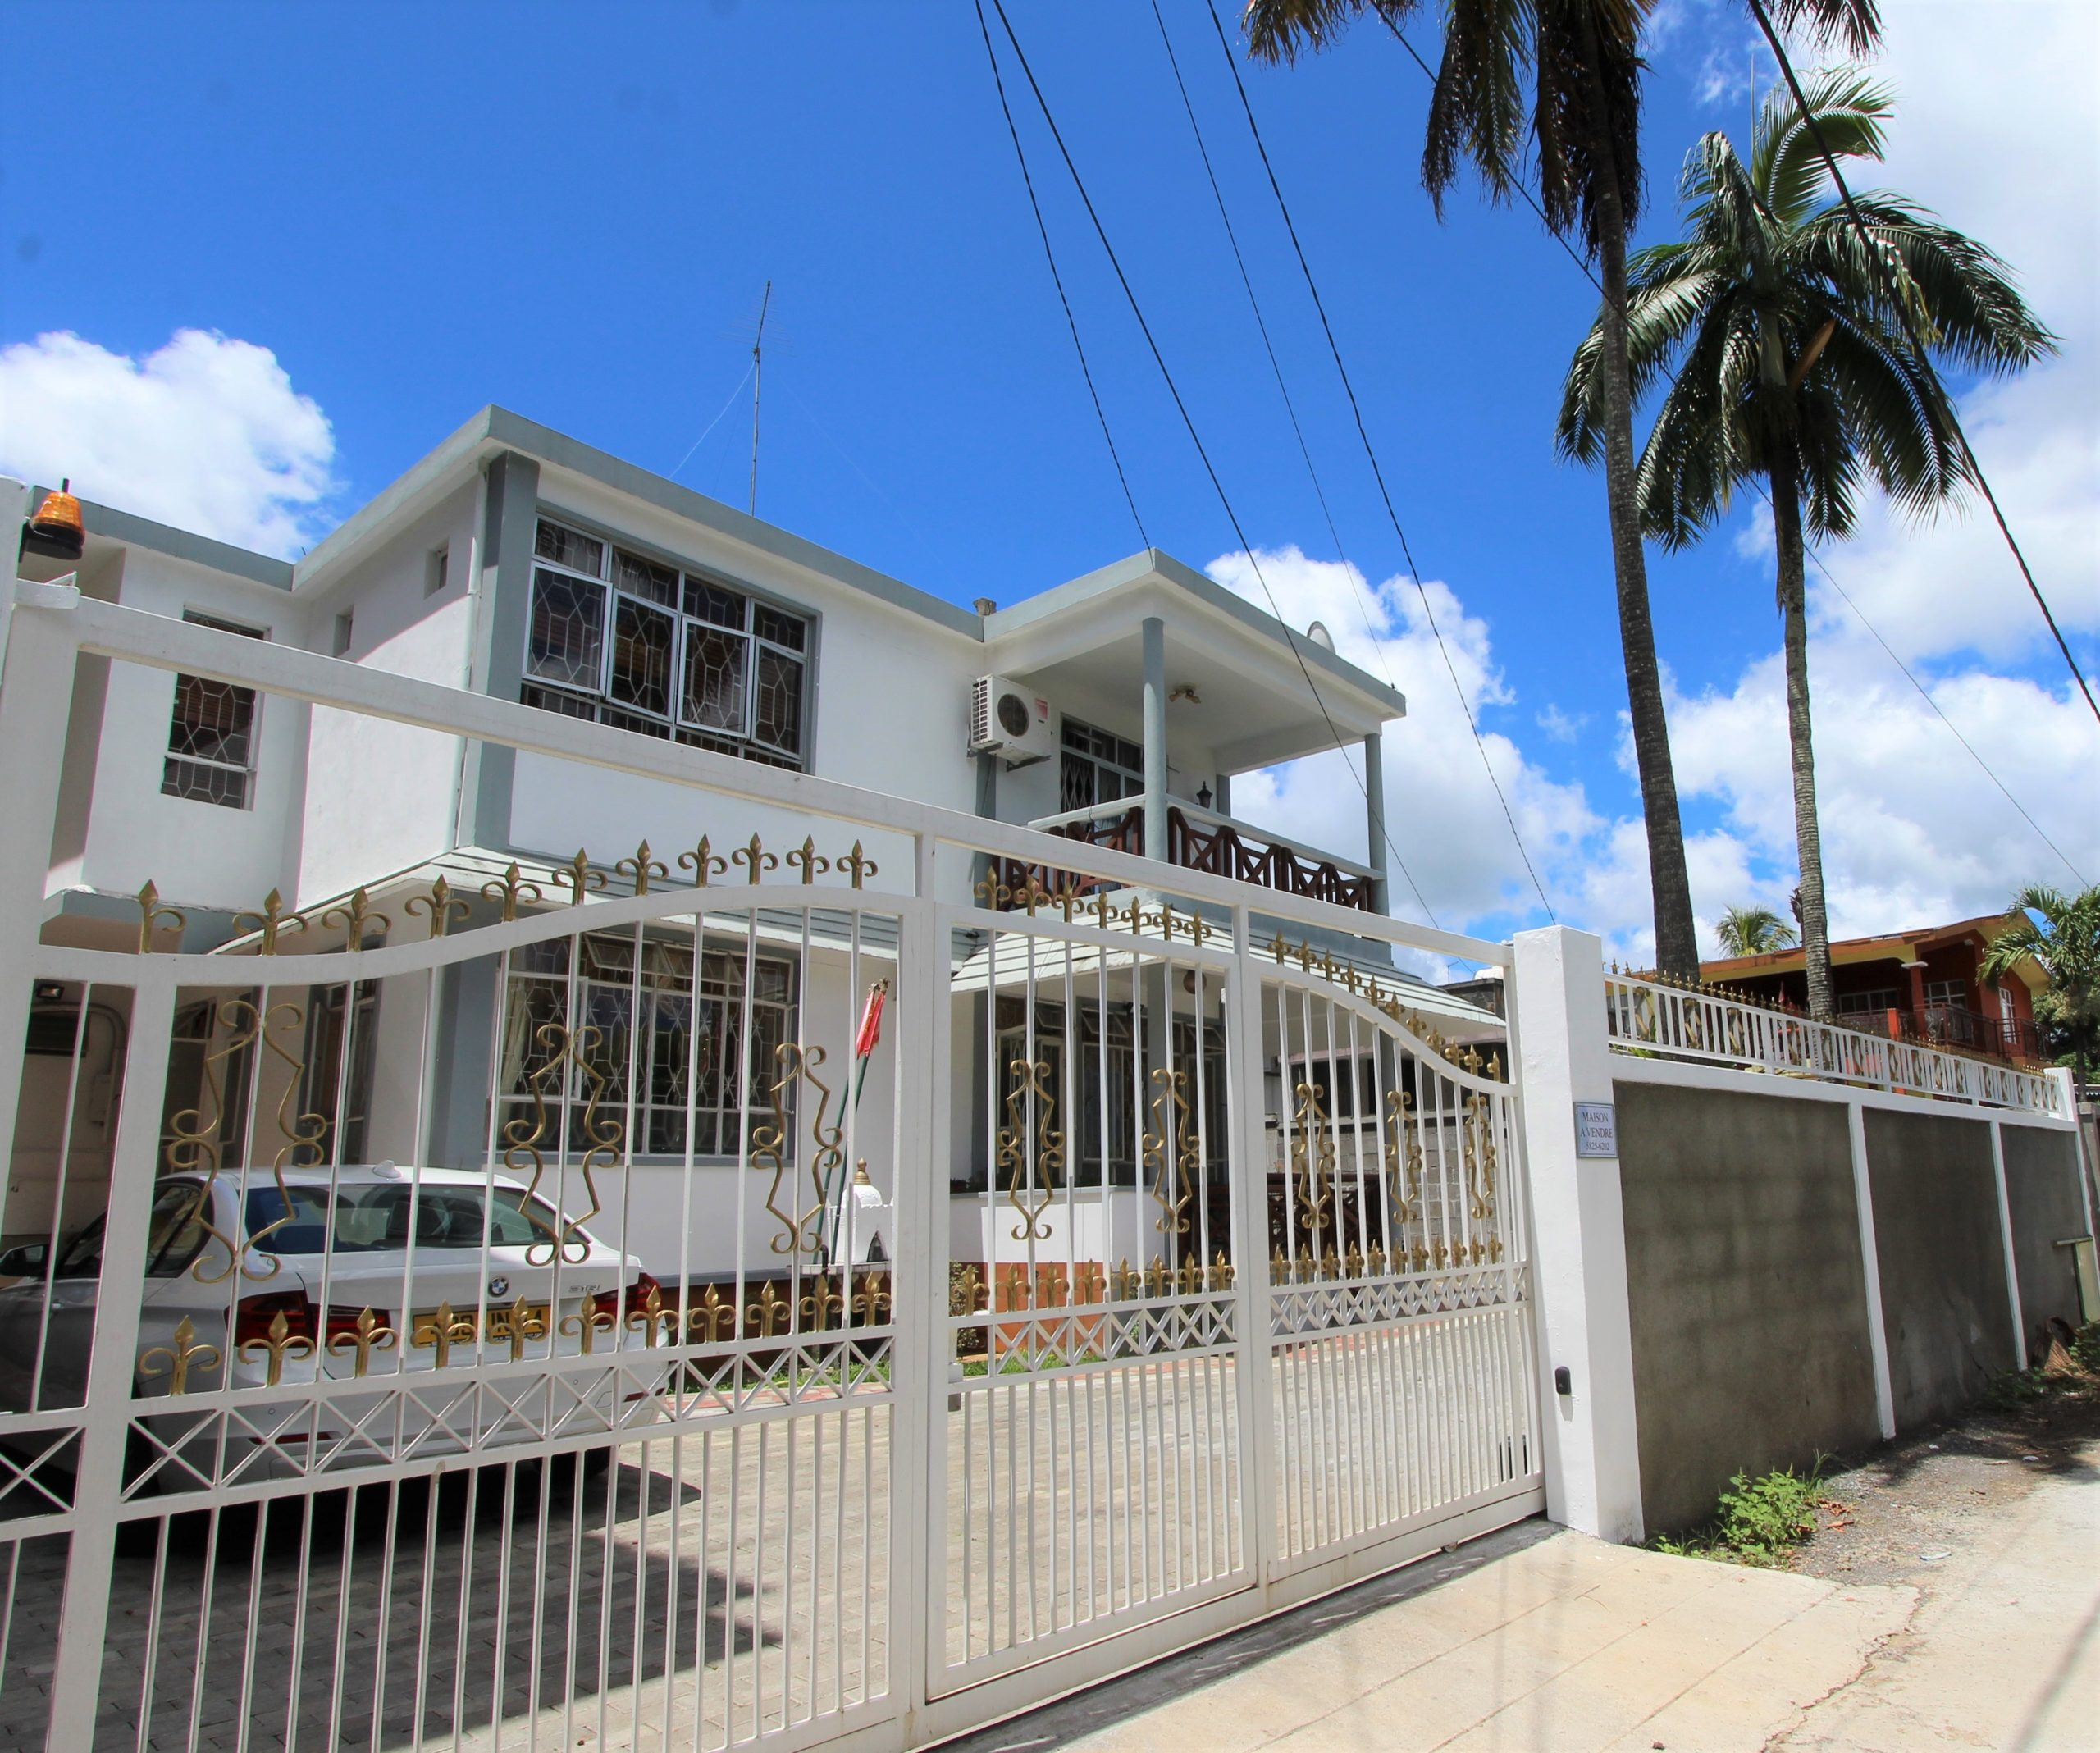 Double storey house in Beau – Bassin